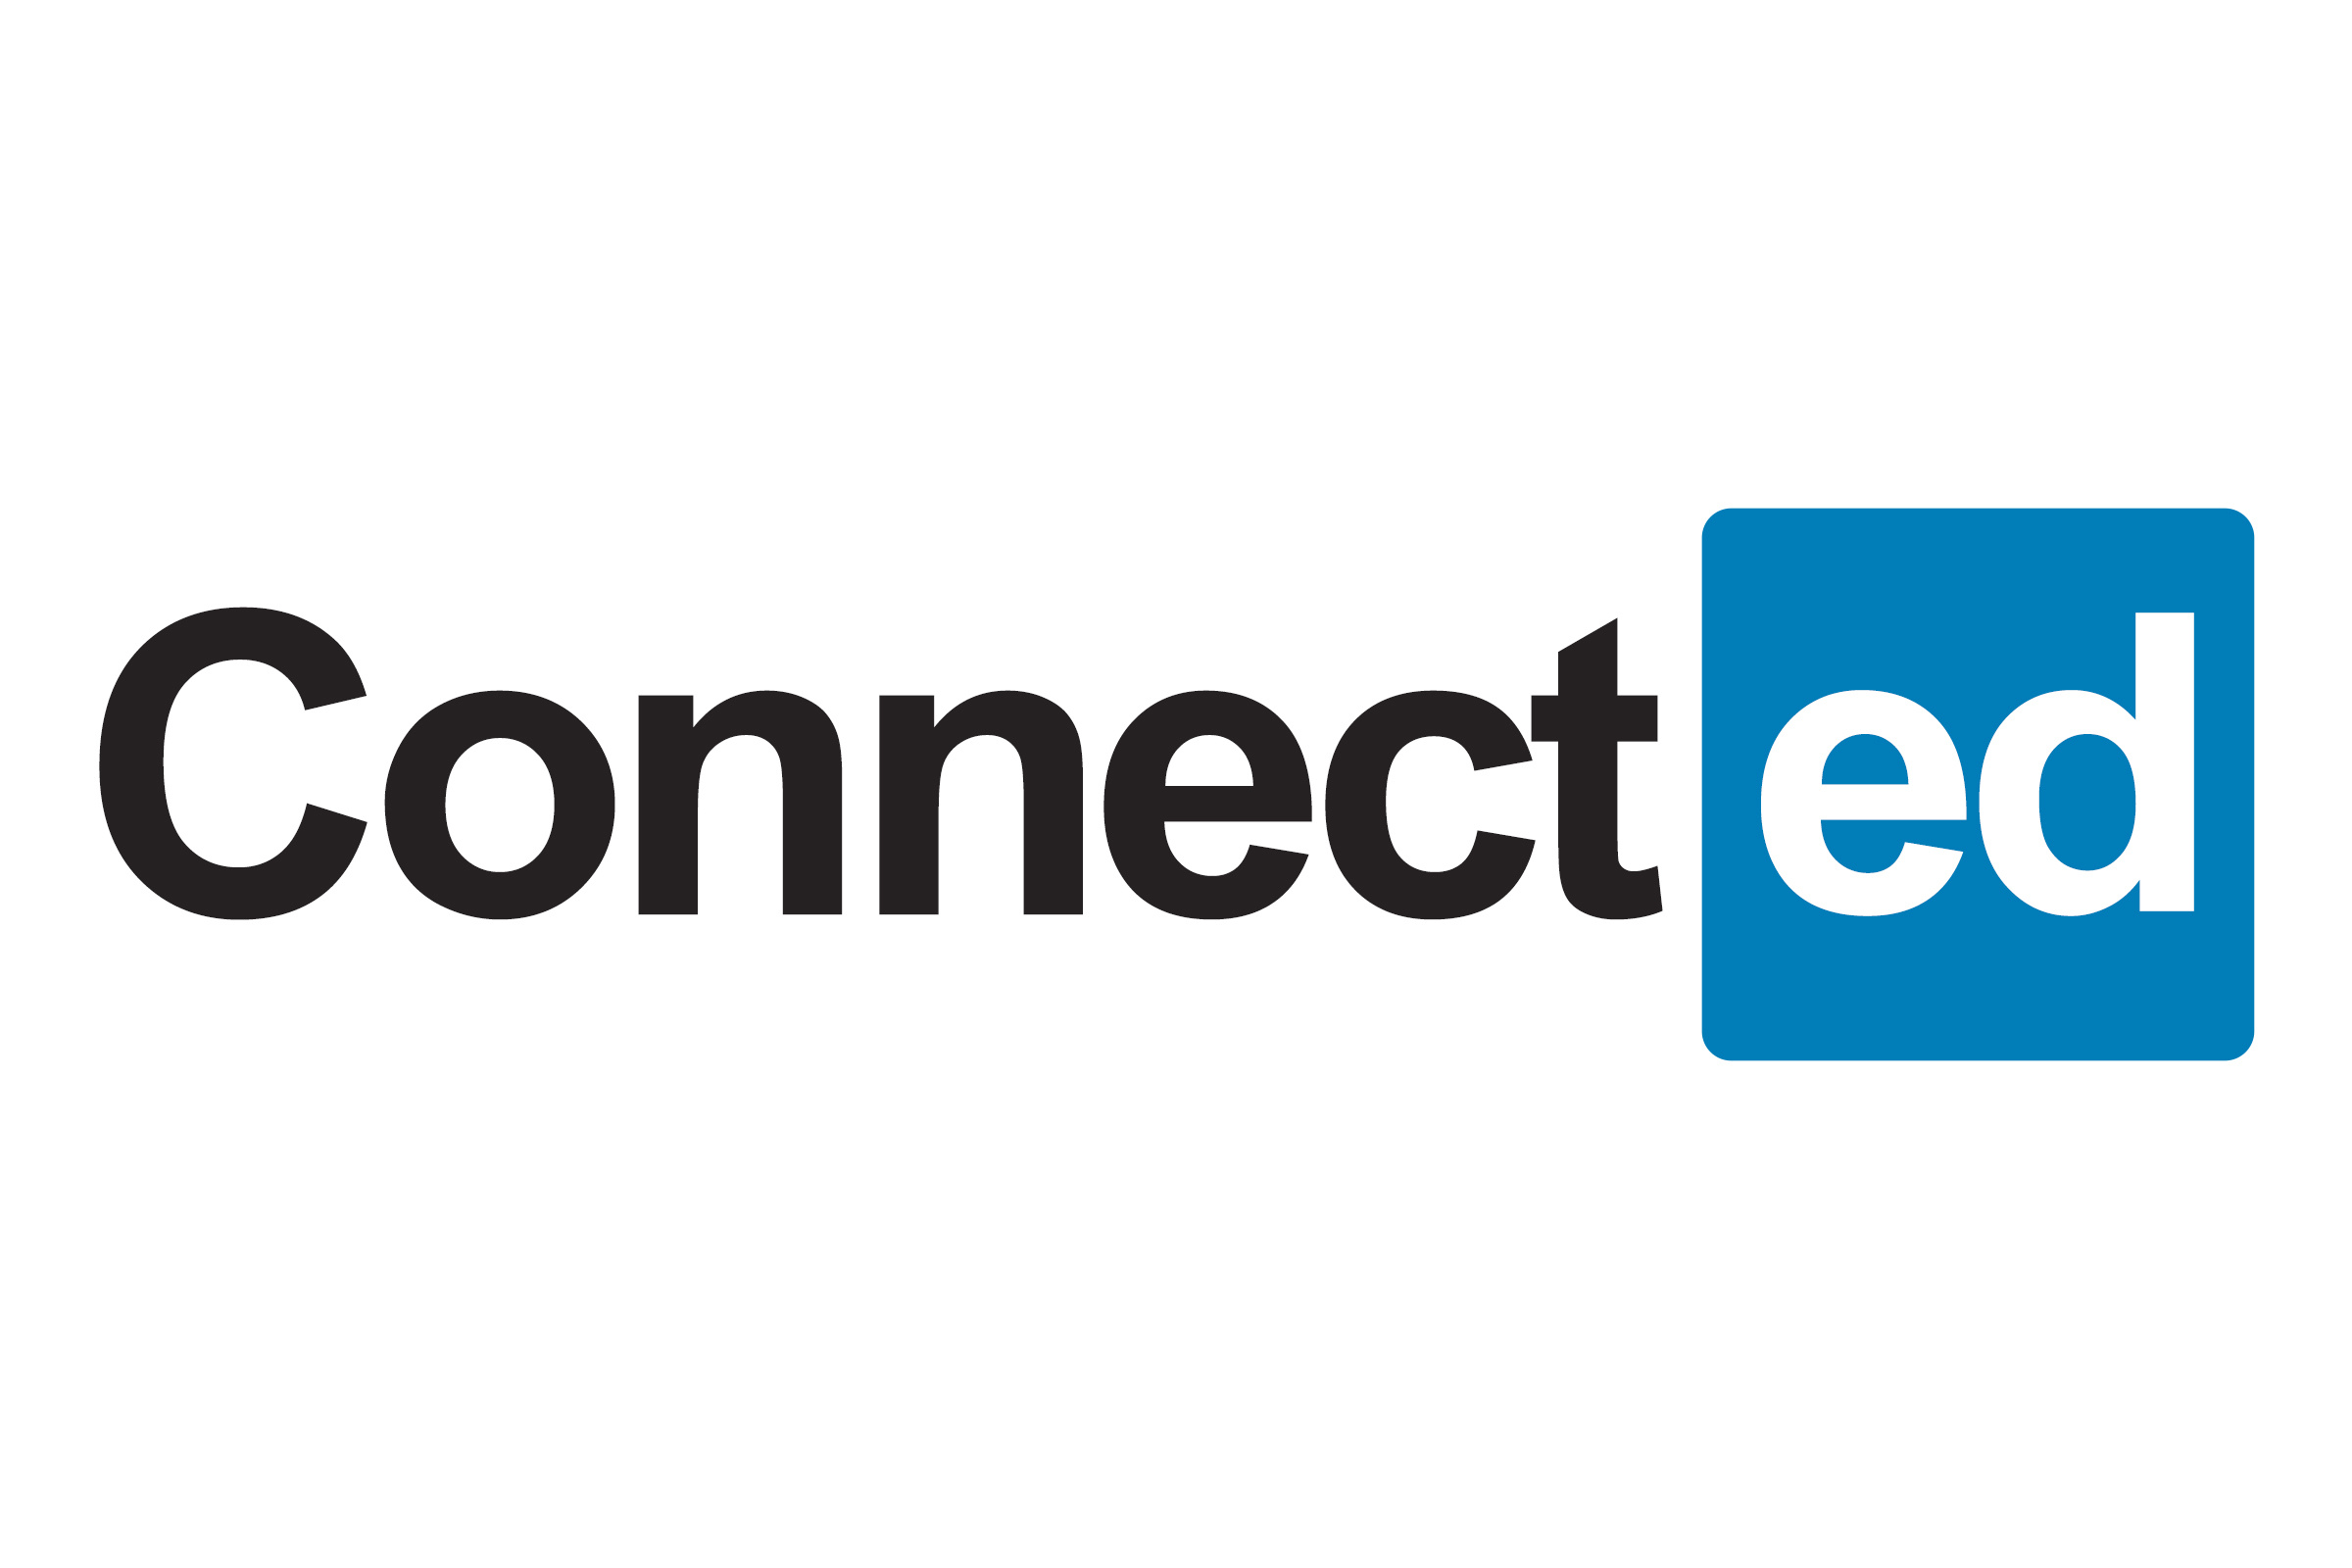 how to export your connections - How to Export Your LinkedIn Connections